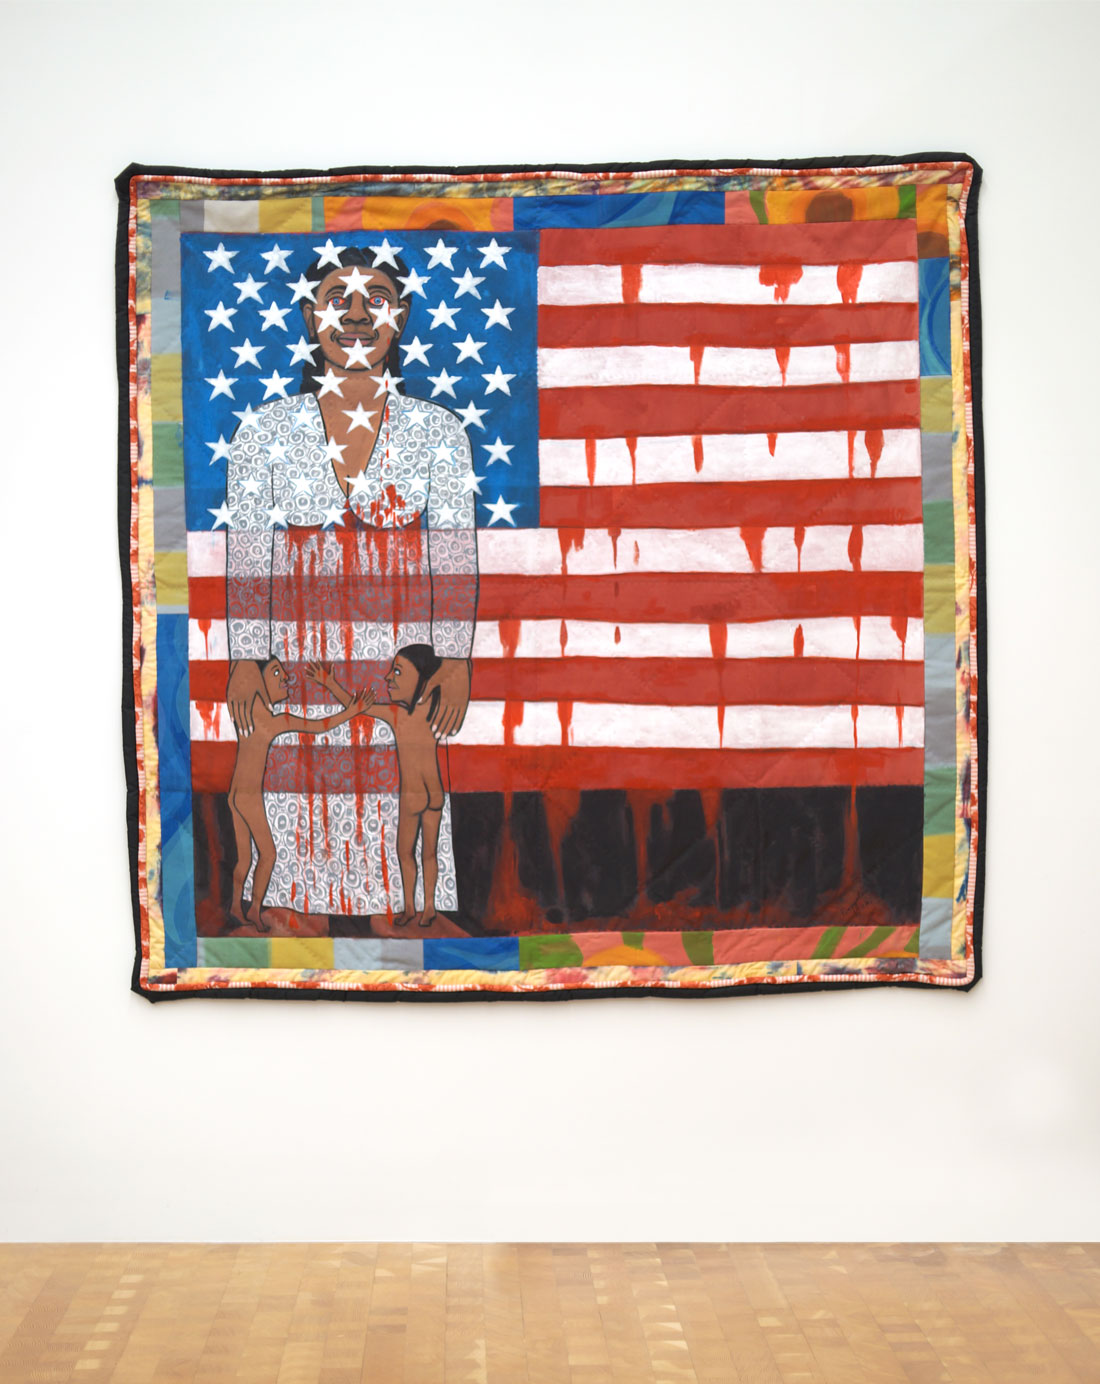 Faith Ringgold The American Collection #6: The Flag is Bleeding #2, 1997 acrylic on canvas with painted and pieced border 76 in x 79 in © 2020 Faith Ringgold / Artists Rights Society (ARS), New York, Courtesy ACA Galleries, New York Courtesy: Glenstone Museum